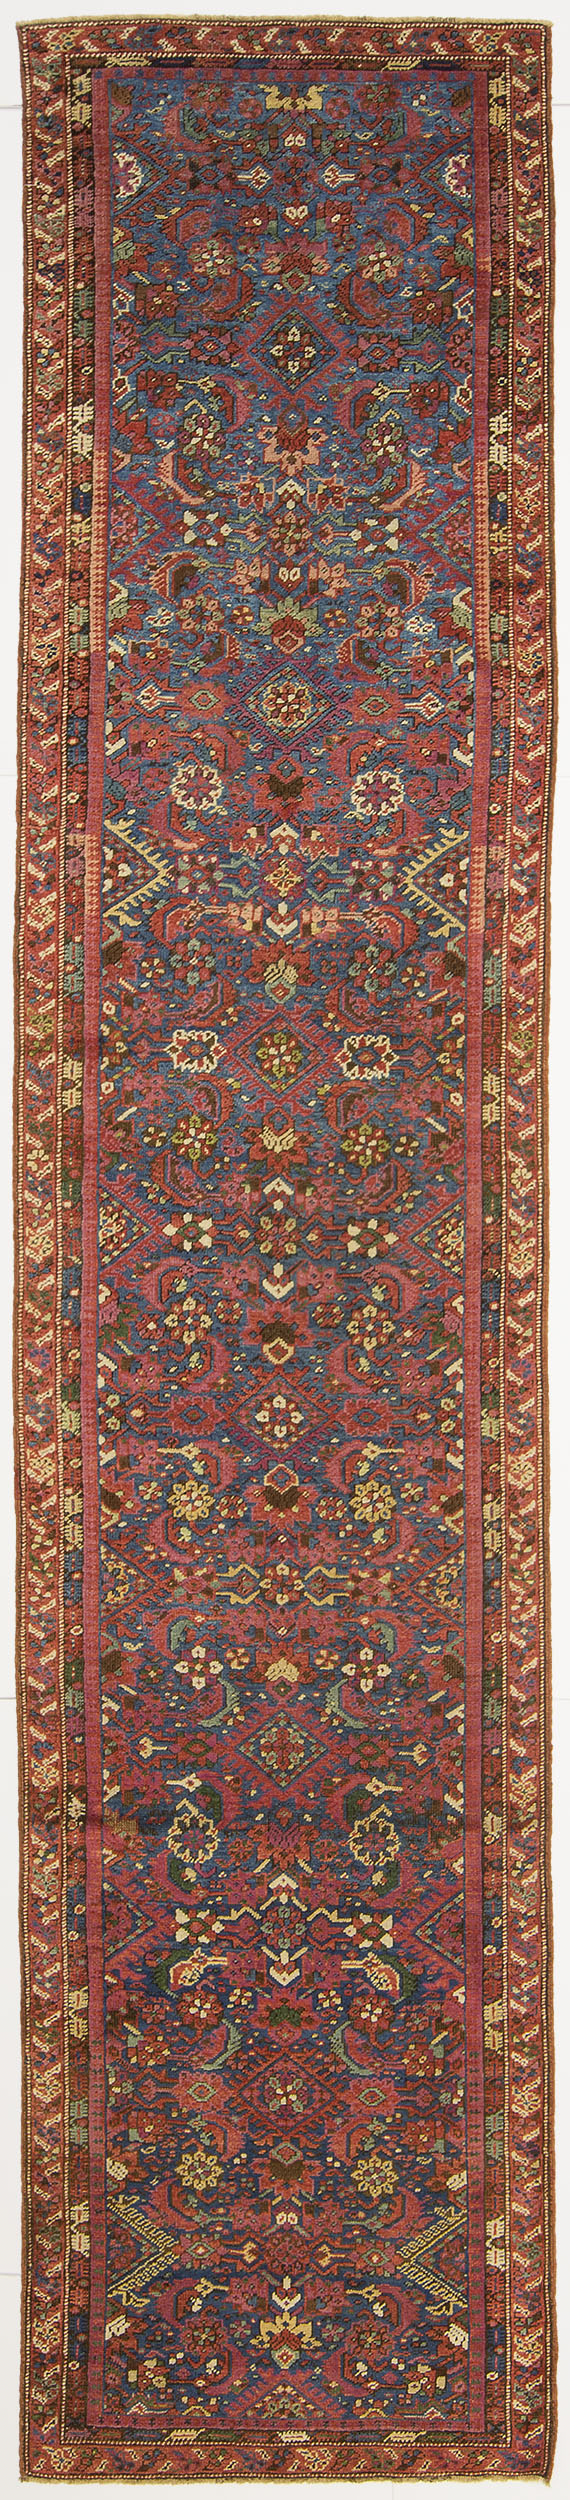 "Bakshaish Runner 13' 3"" x 2' 8"""